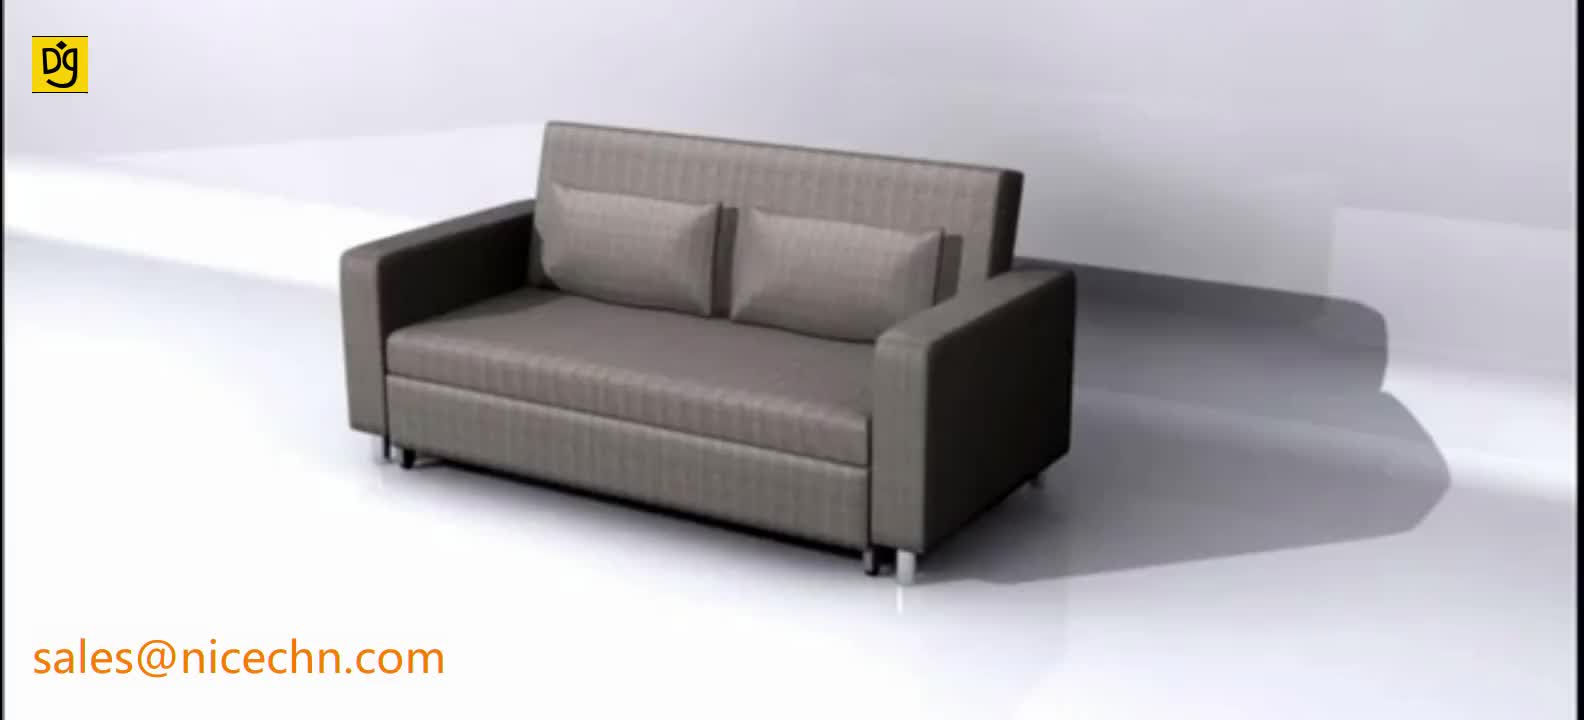 Canapé Lit Pliant Alibaba Confortable Causeuse Futon Canapé Lit Pliant Made In China Buy Futon Canapé Lit Canapé Lit Pliant Futon Canapé Cum Lit Product On